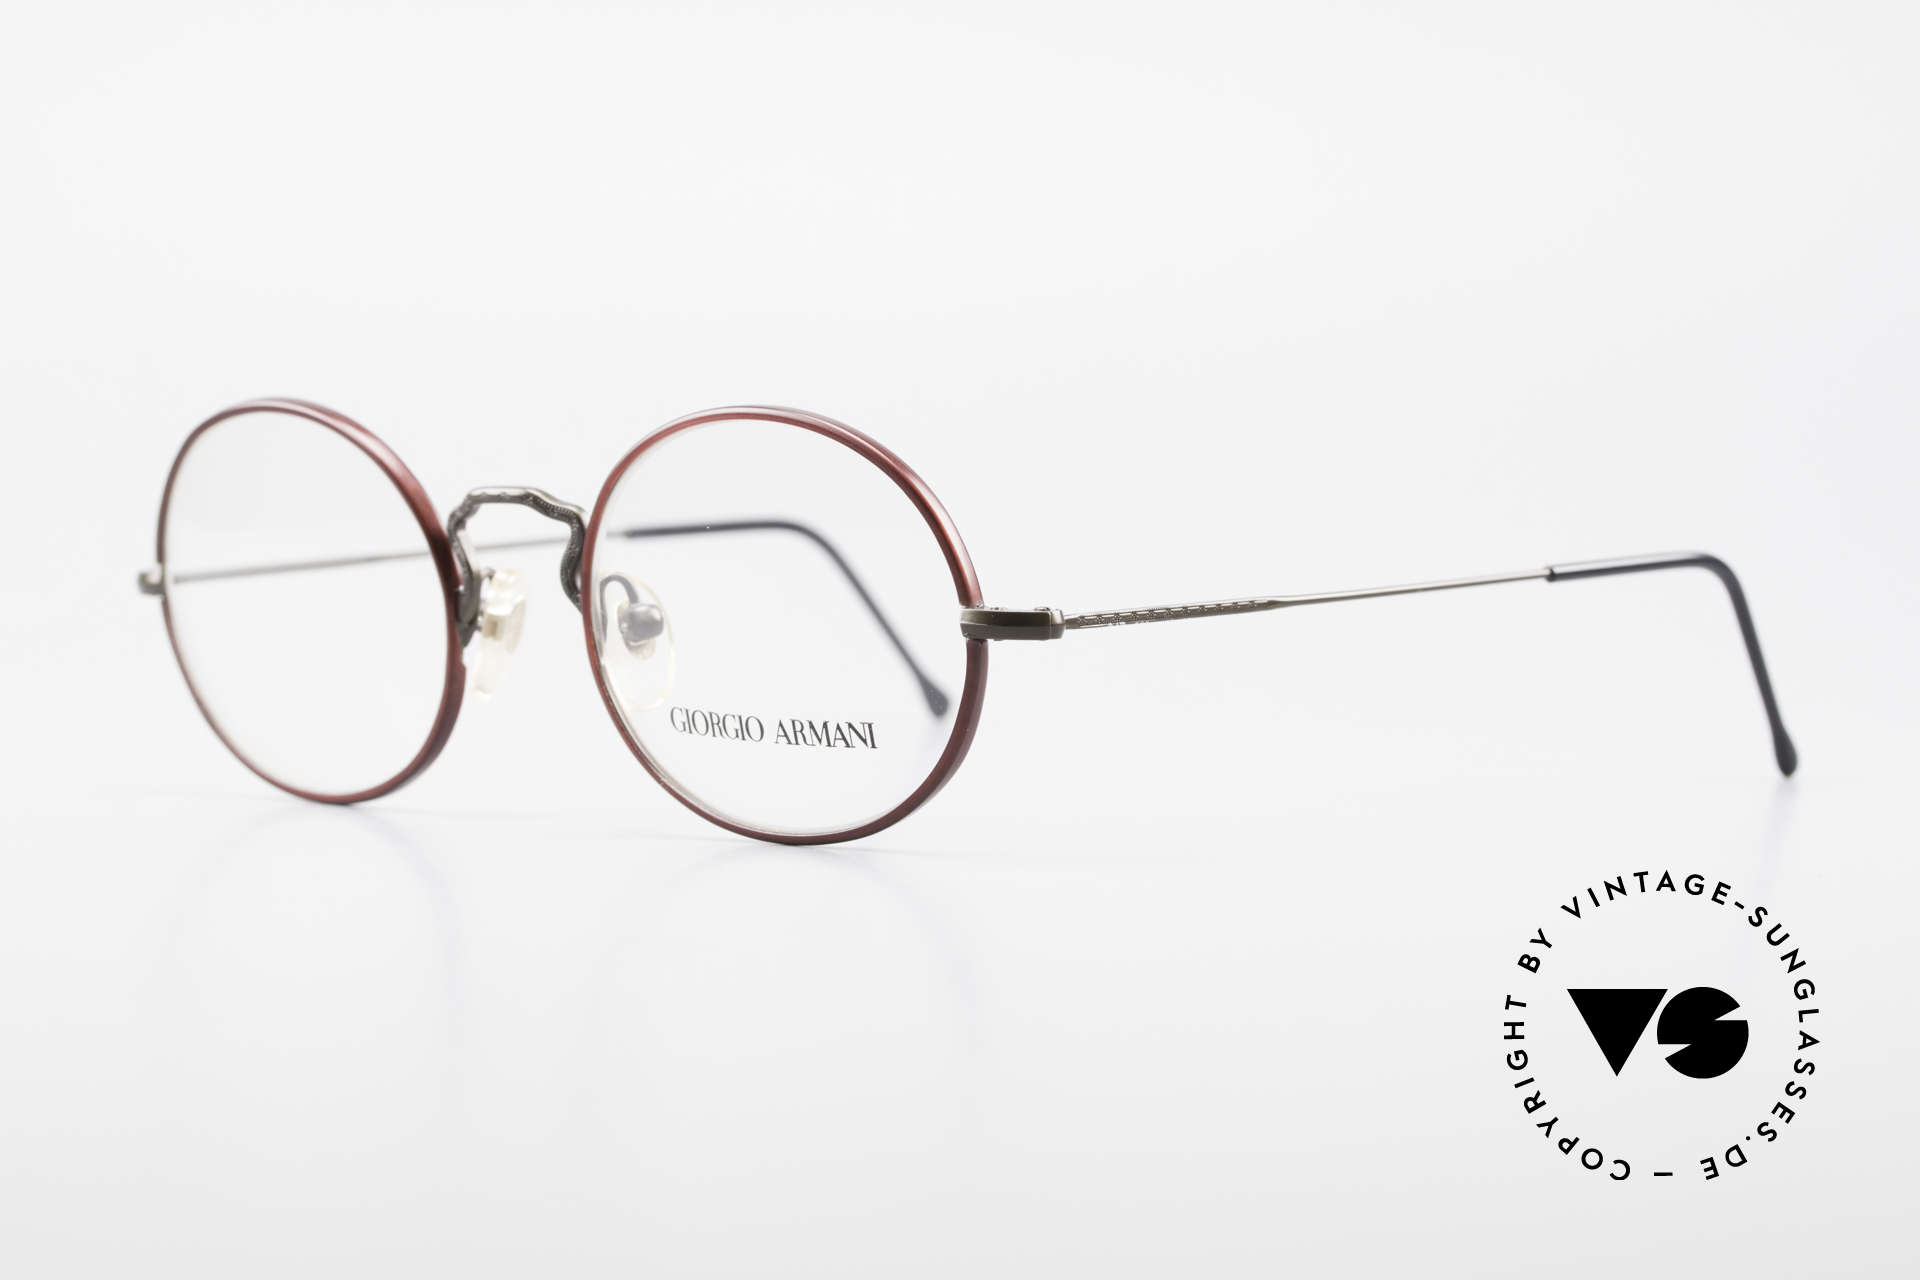 Giorgio Armani 247 Oval 90's Eyeglasses No Retro, frame with subtle engravings & ruby-colored rings, Made for Men and Women